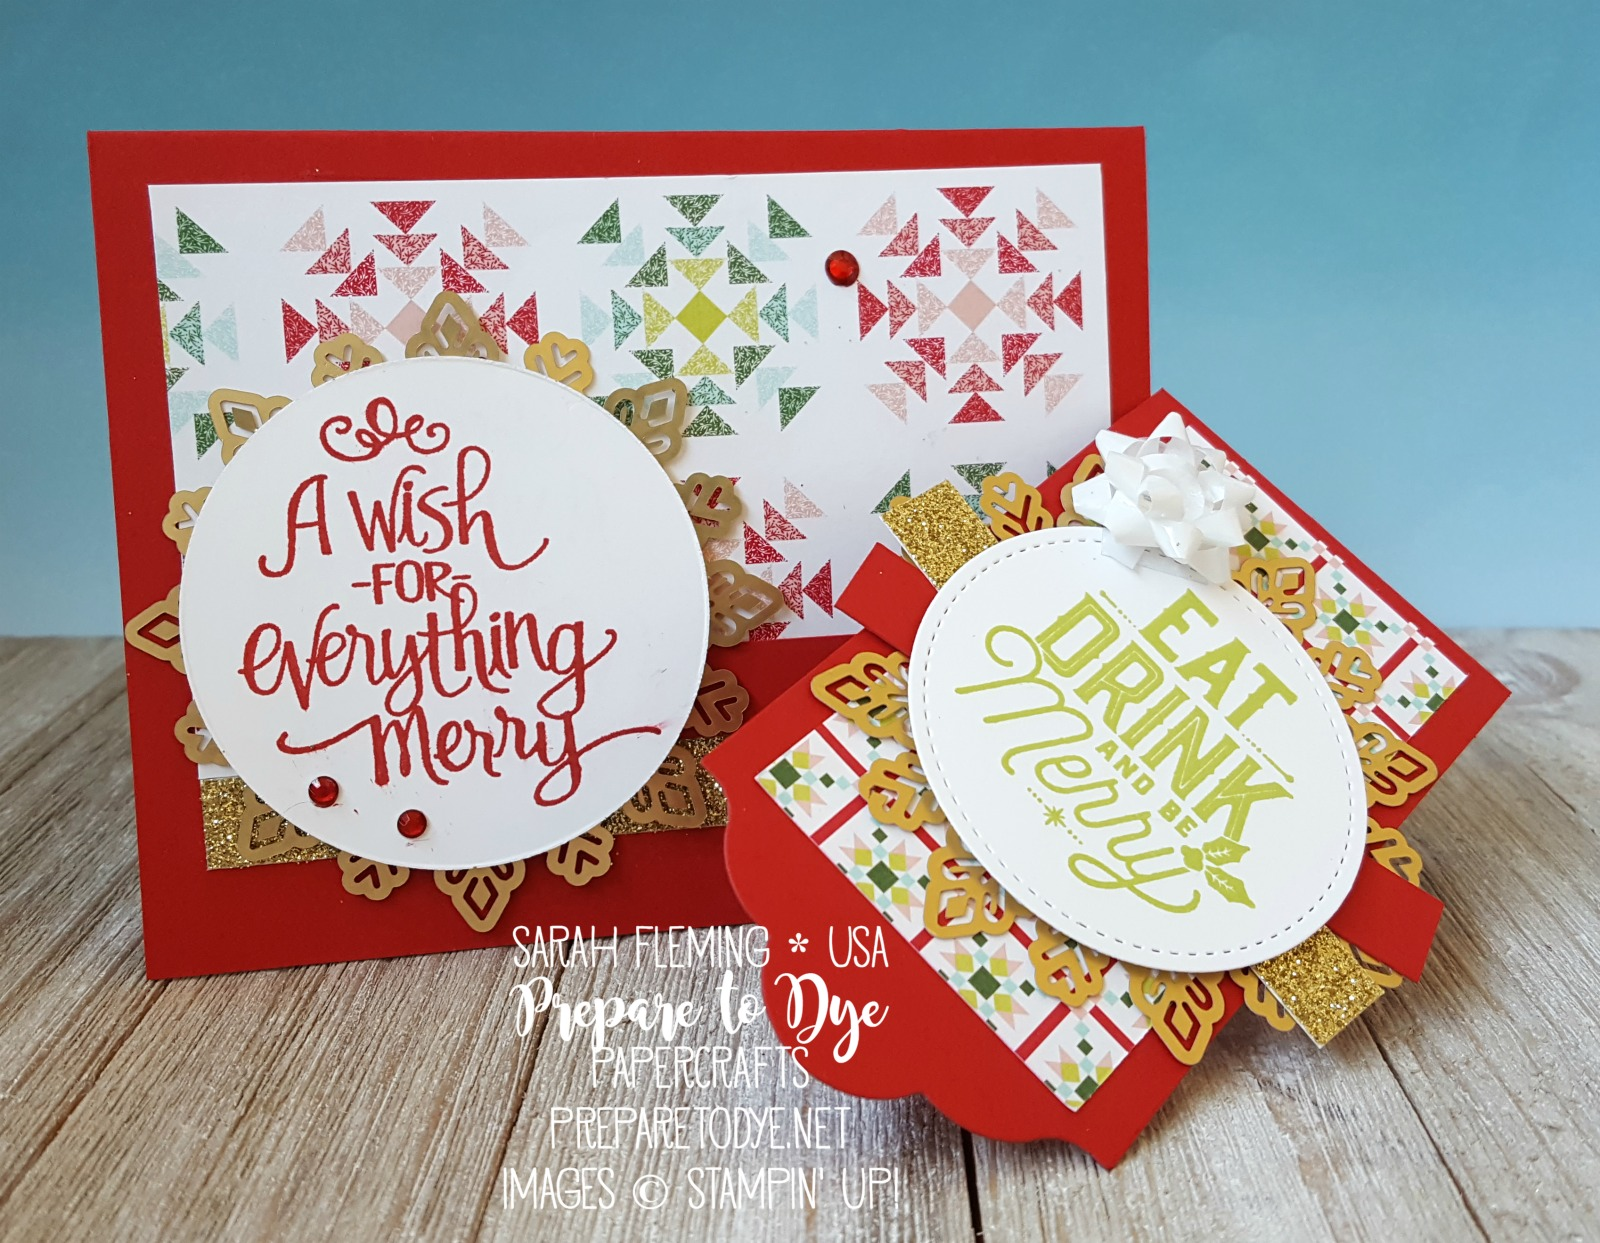 Stampin' Up! Ready for Christmas and Merry Little Labels stamps with Quilted Christmas paper and Foil Snowflakes - matching gift set with card & bottle tag - Sarah Fleming - Prepare to Dye Papercrafts